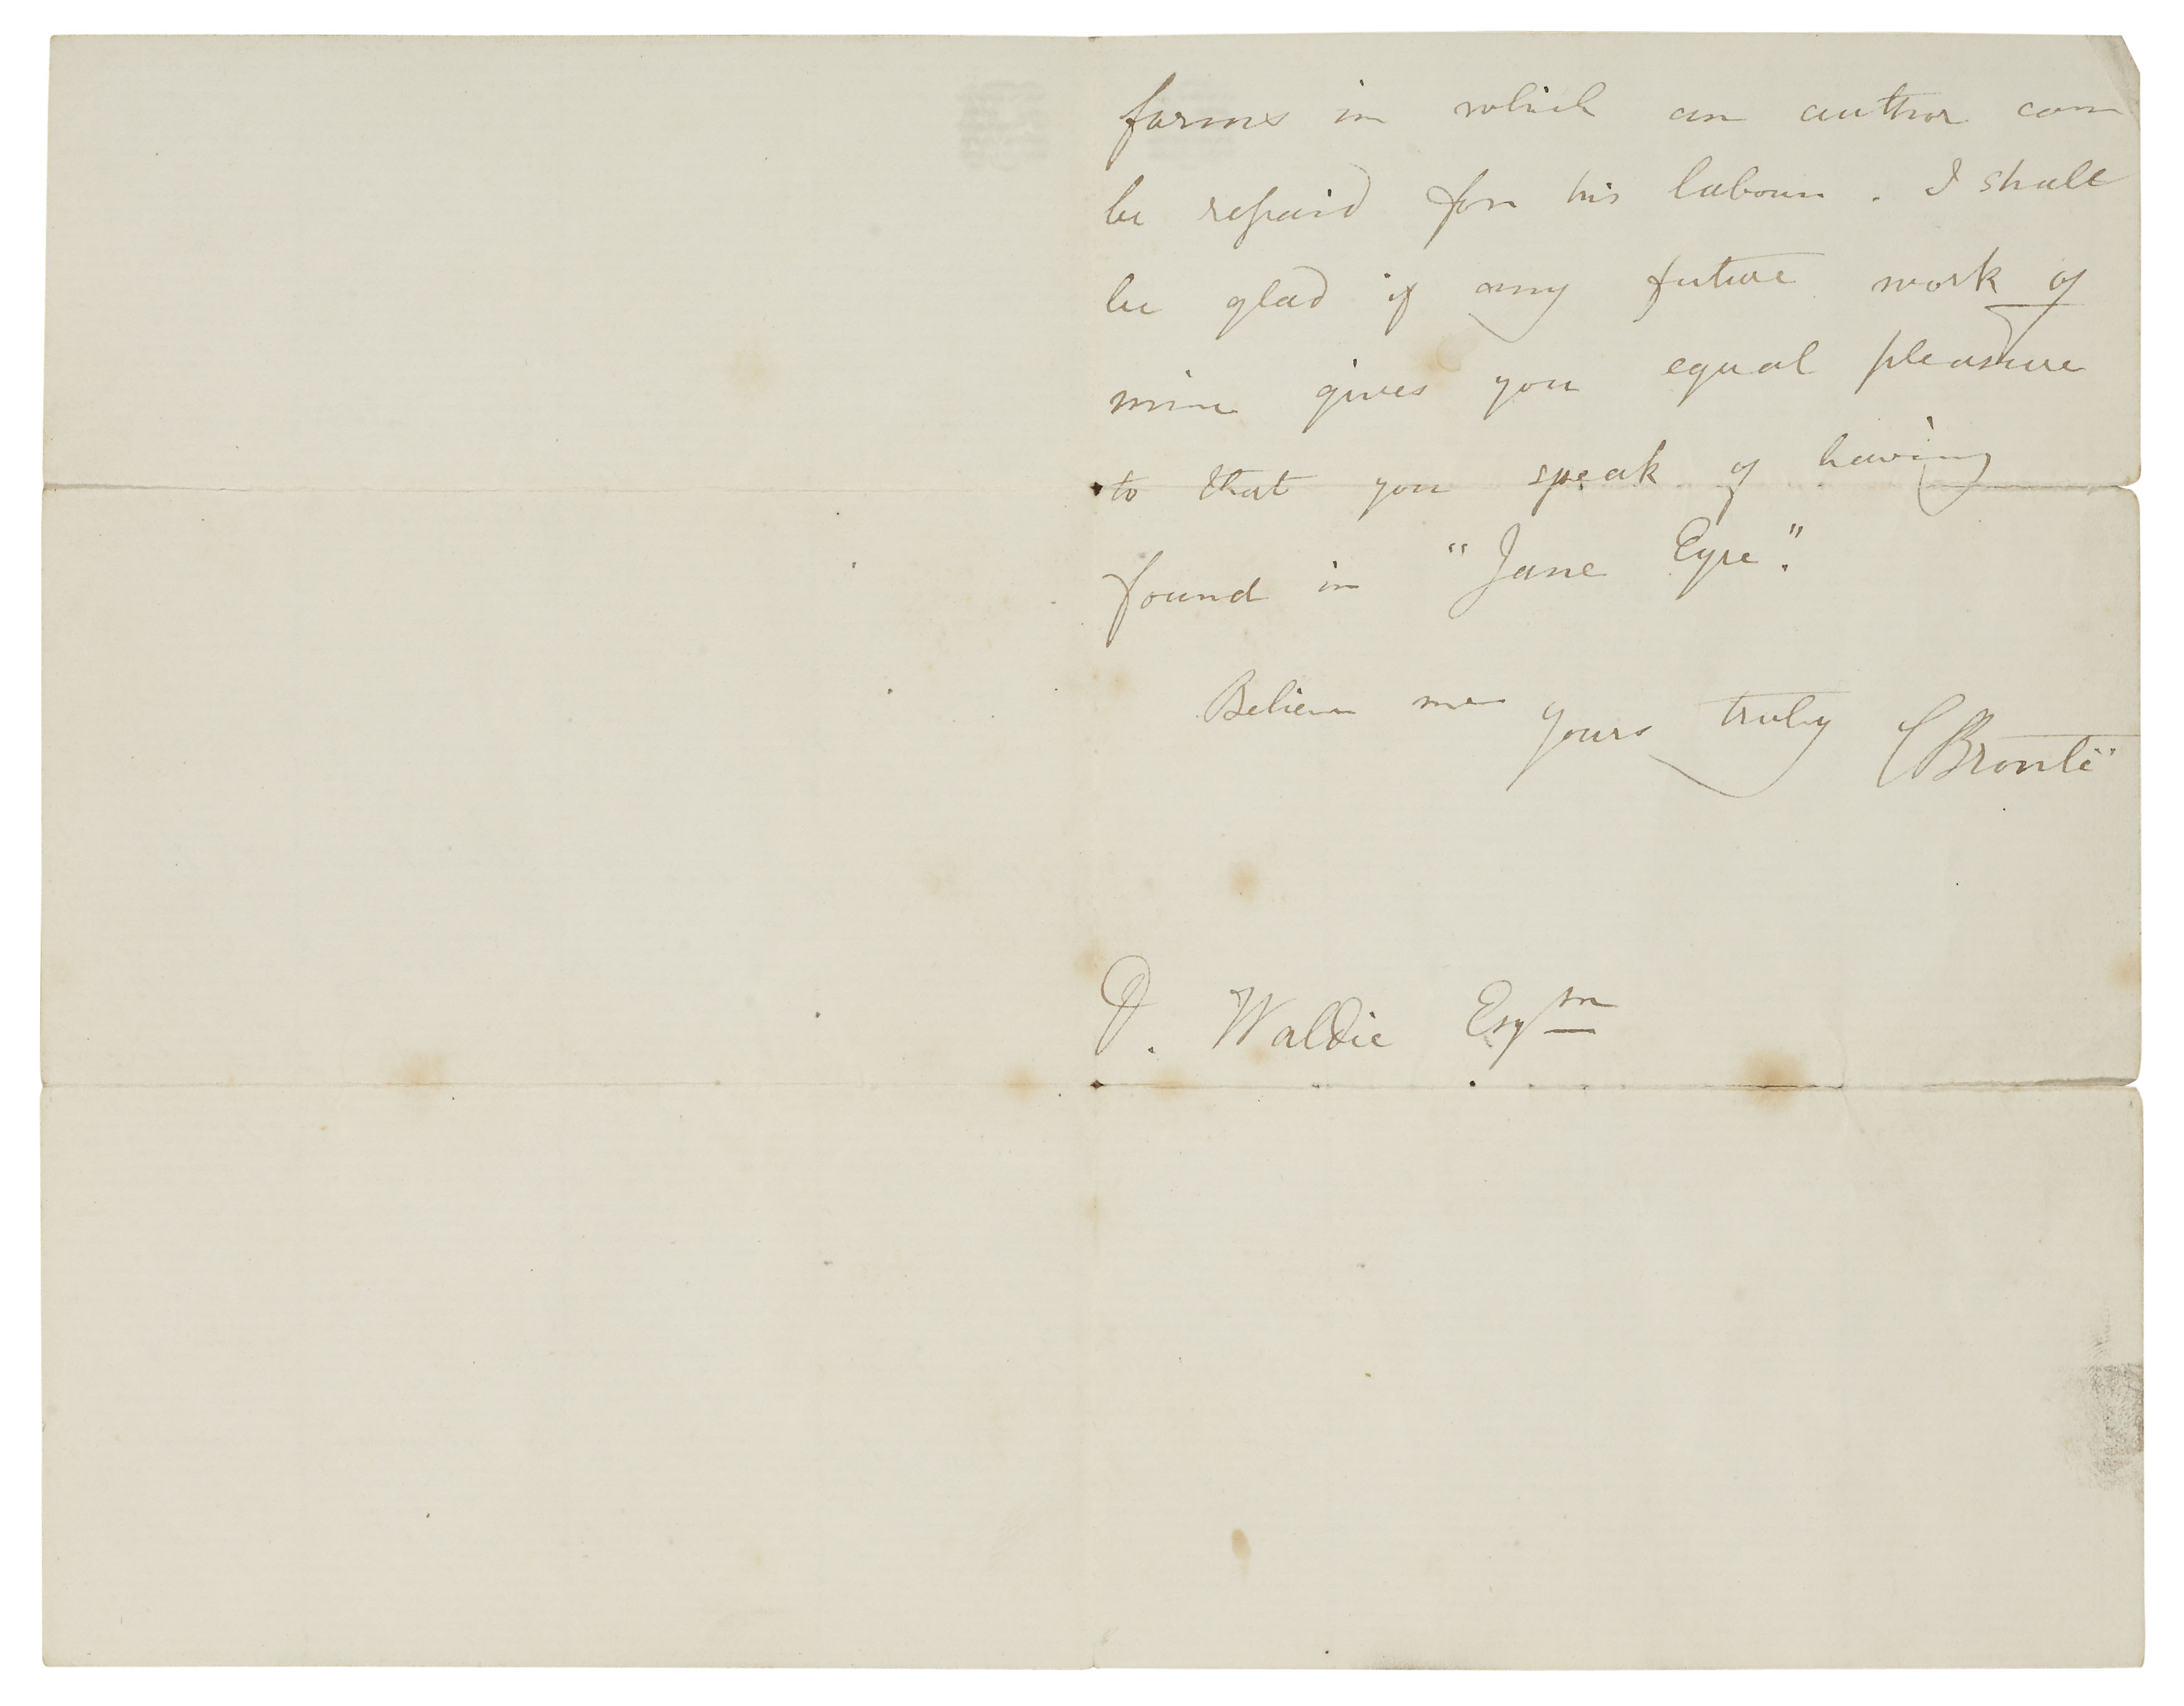 Rare Autographed Letter from Charlotte Bronte